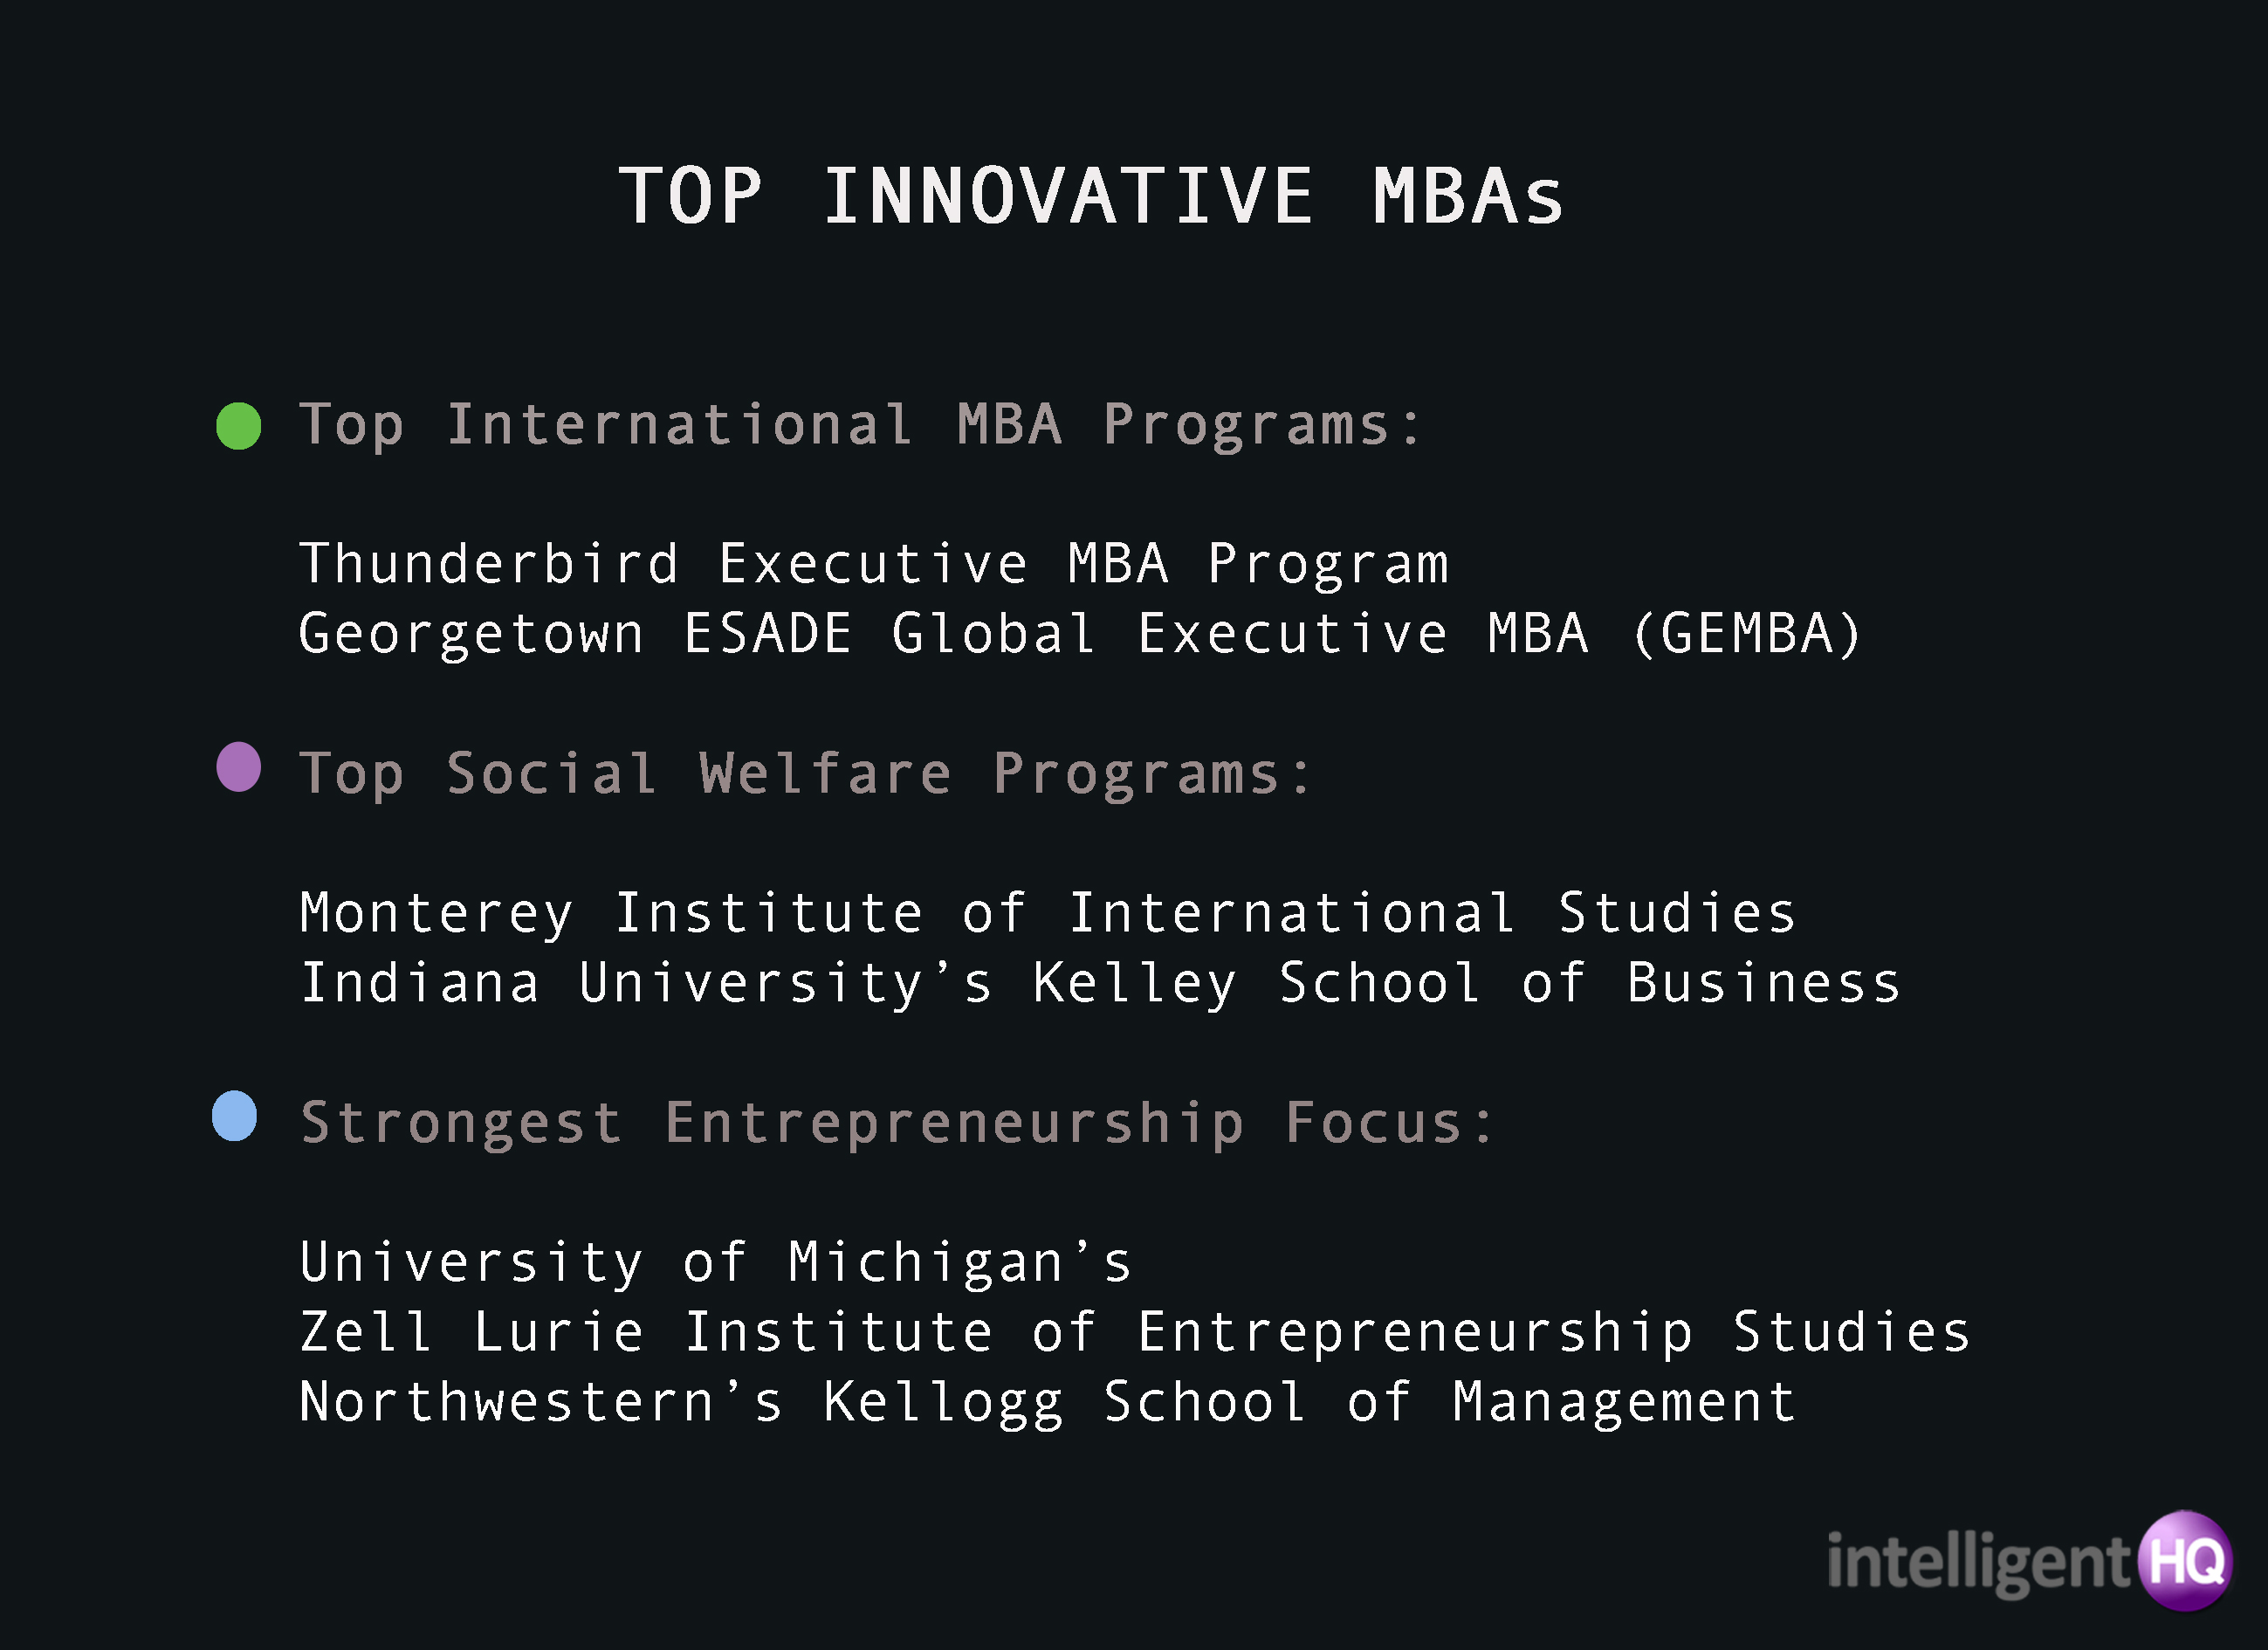 Top Innovative MBAs Intelligenthq